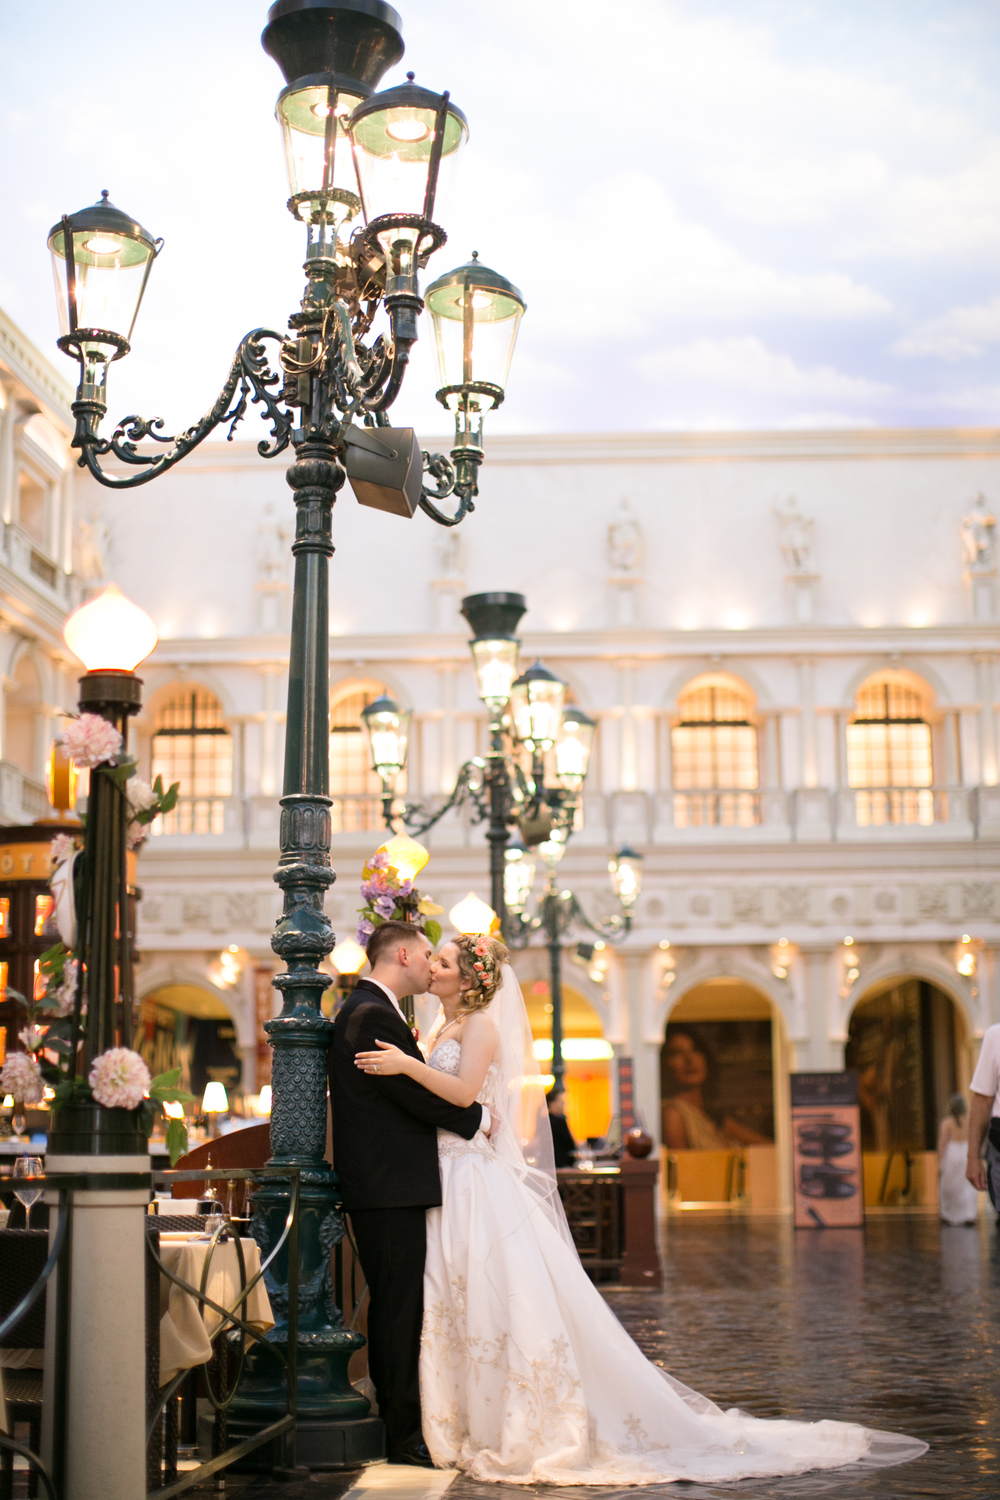 Wedding at The Venetian Las Vegas. Las Vegas Wedding Planner. Best Destination Wedding Planner Las Vegas.